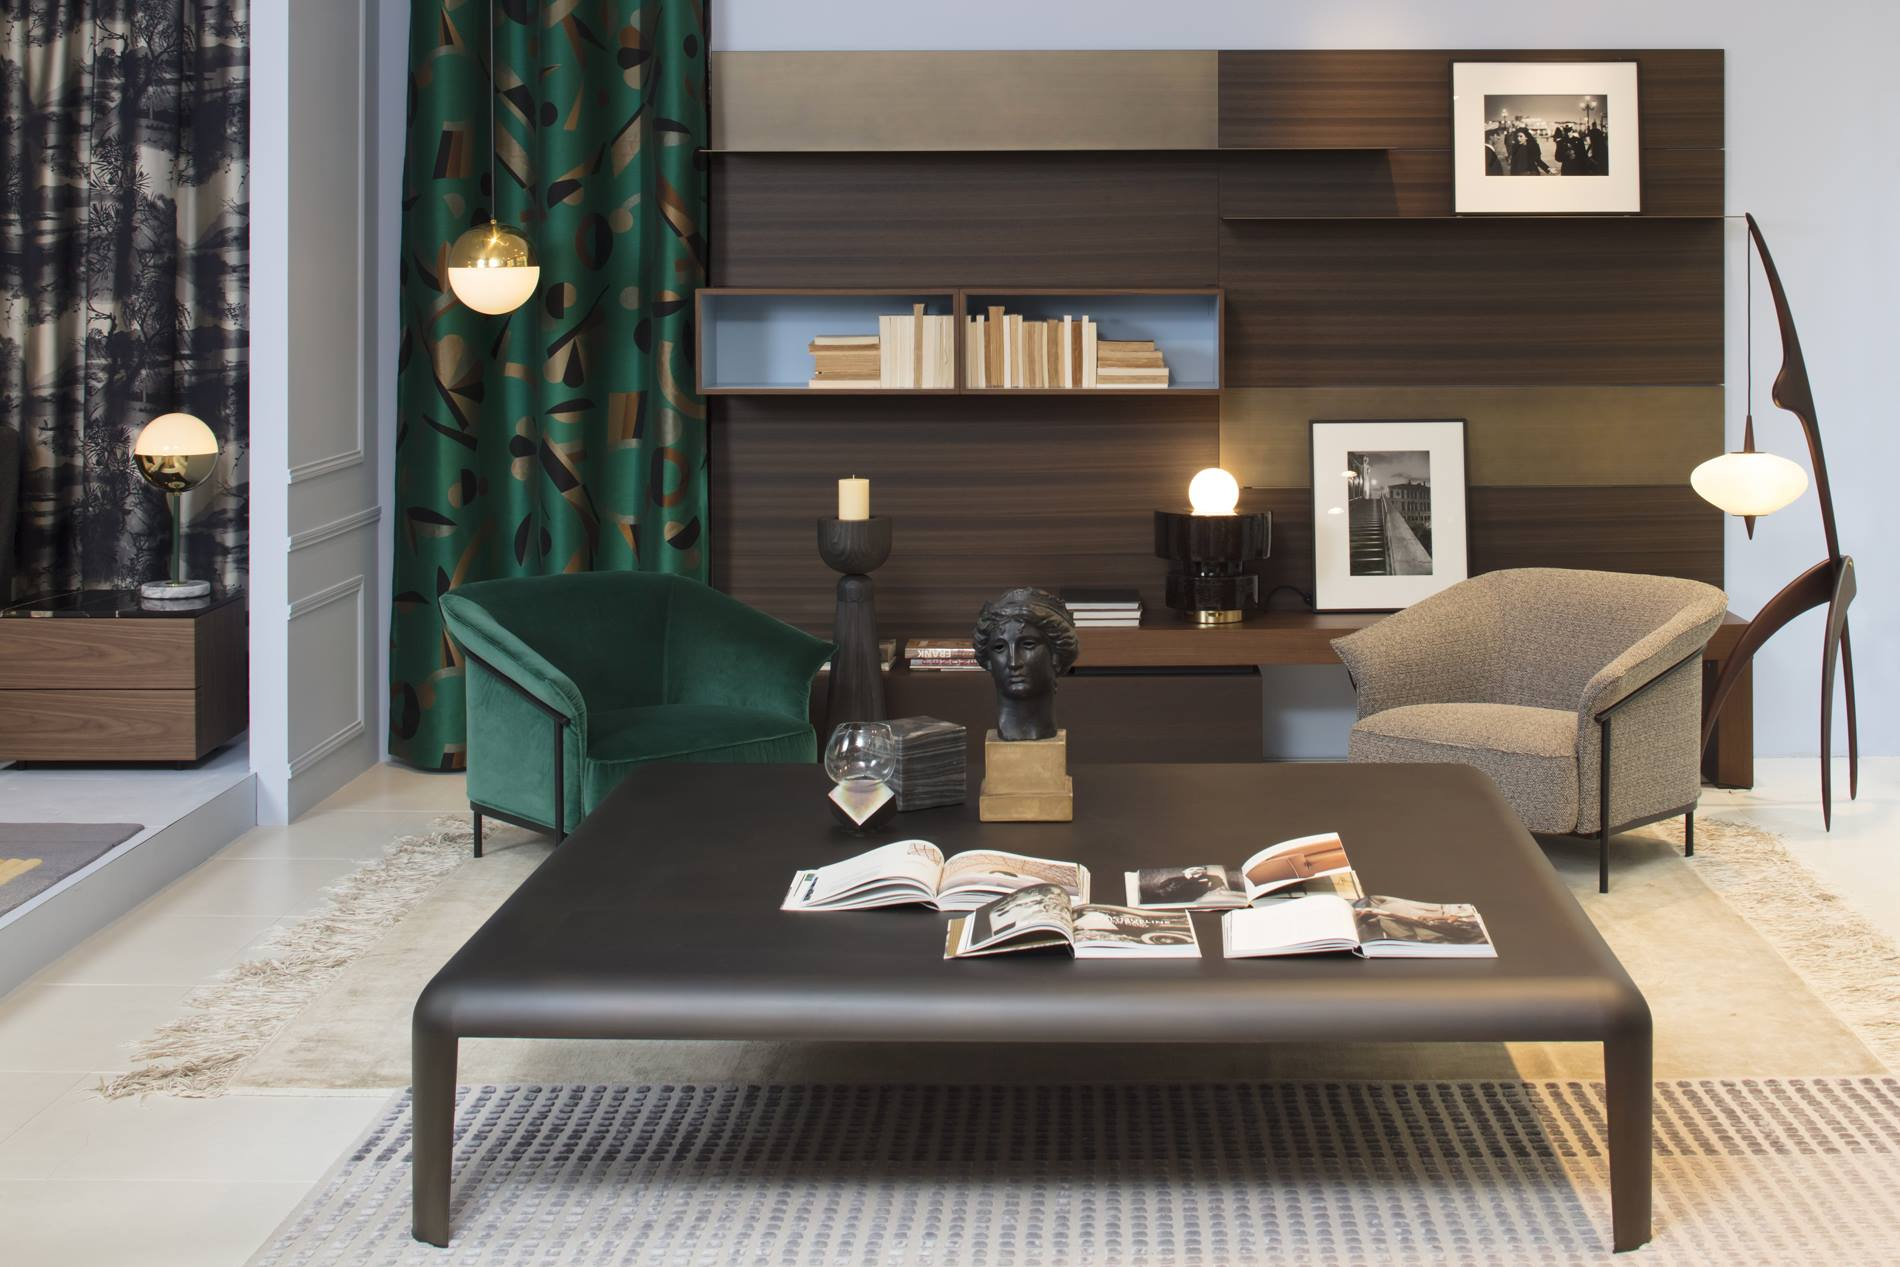 Home design online advantages the main advantage in using our home design online service is the convenience that allows you to remain wherever you already